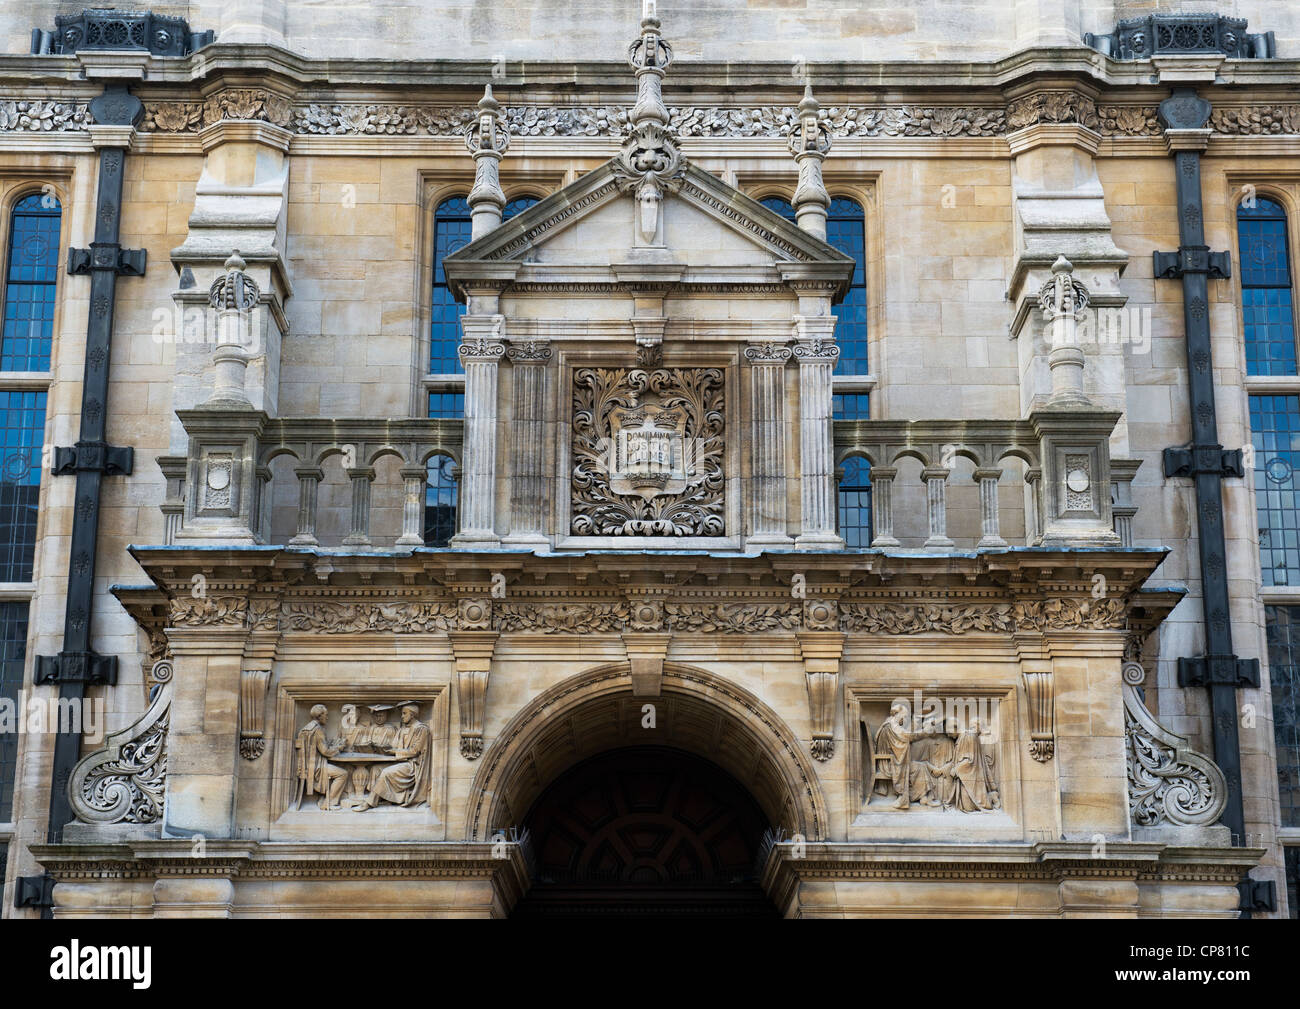 Relief sculpture on the entrance to University of Oxfords Examination Schools Building. Oxford, Oxfordshire, England - Stock Image